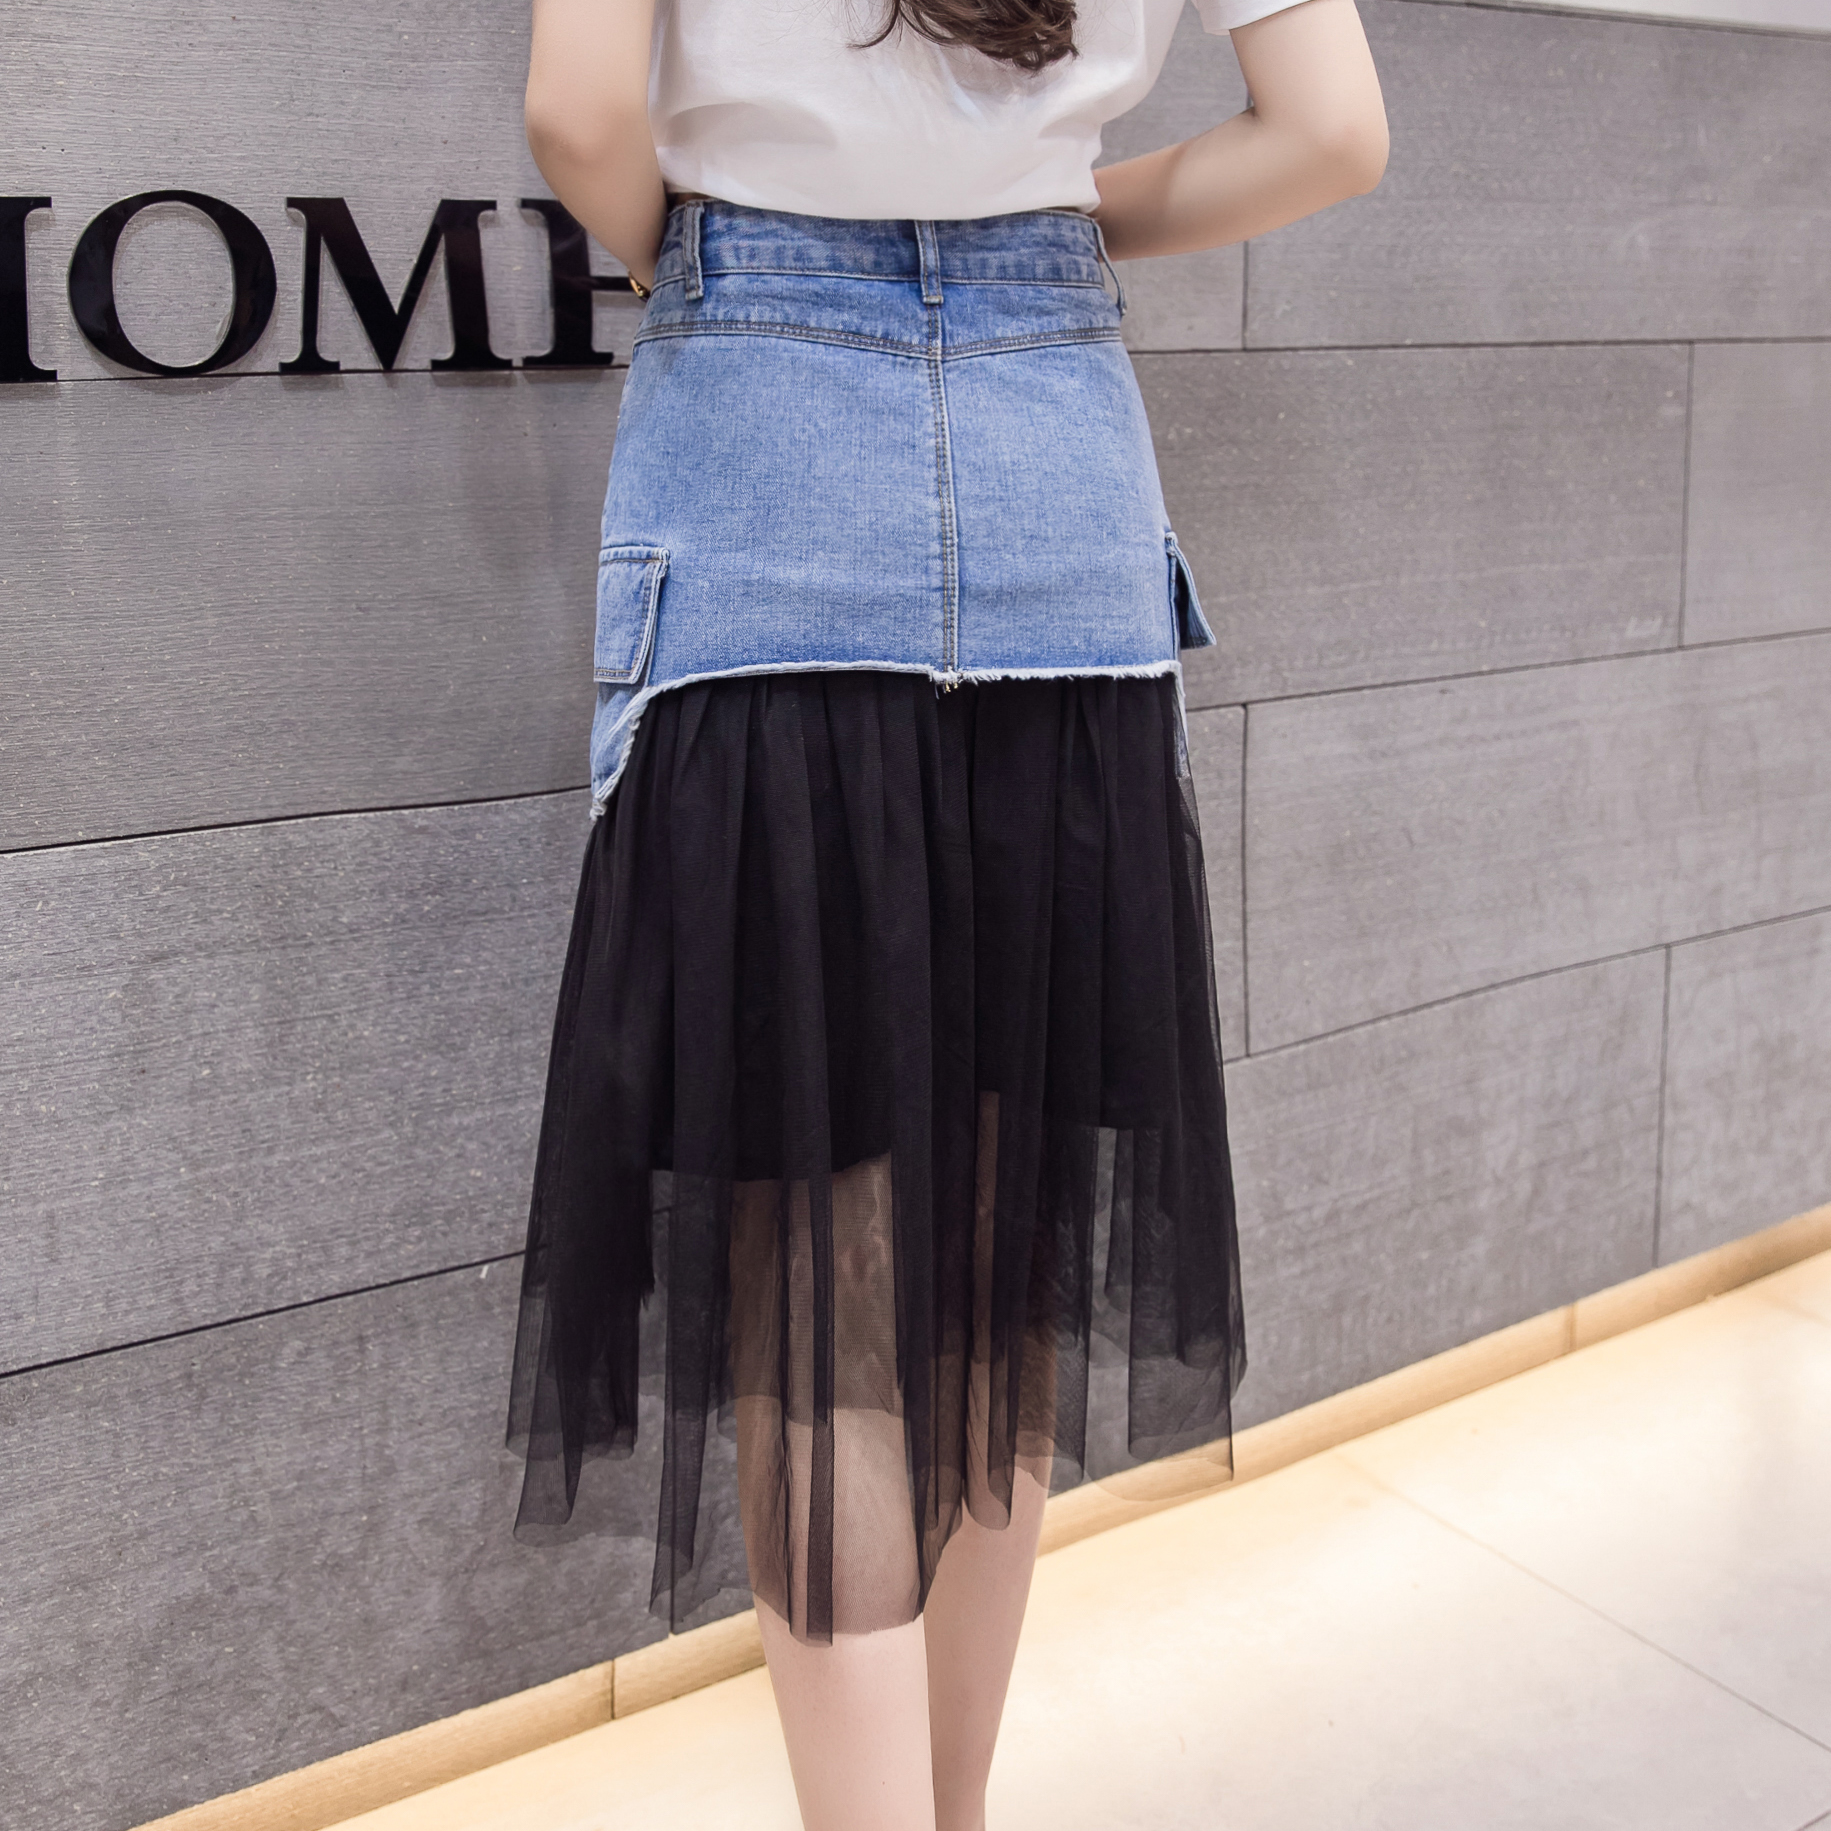 77a5691a611 Women Blue Denim Patchwork Tulle Skirt 2018 New Casual Pockets Midi Summer  Skirts Womens High Waist Pleated Long Skirt-in Skirts from Women s Clothing  on ...